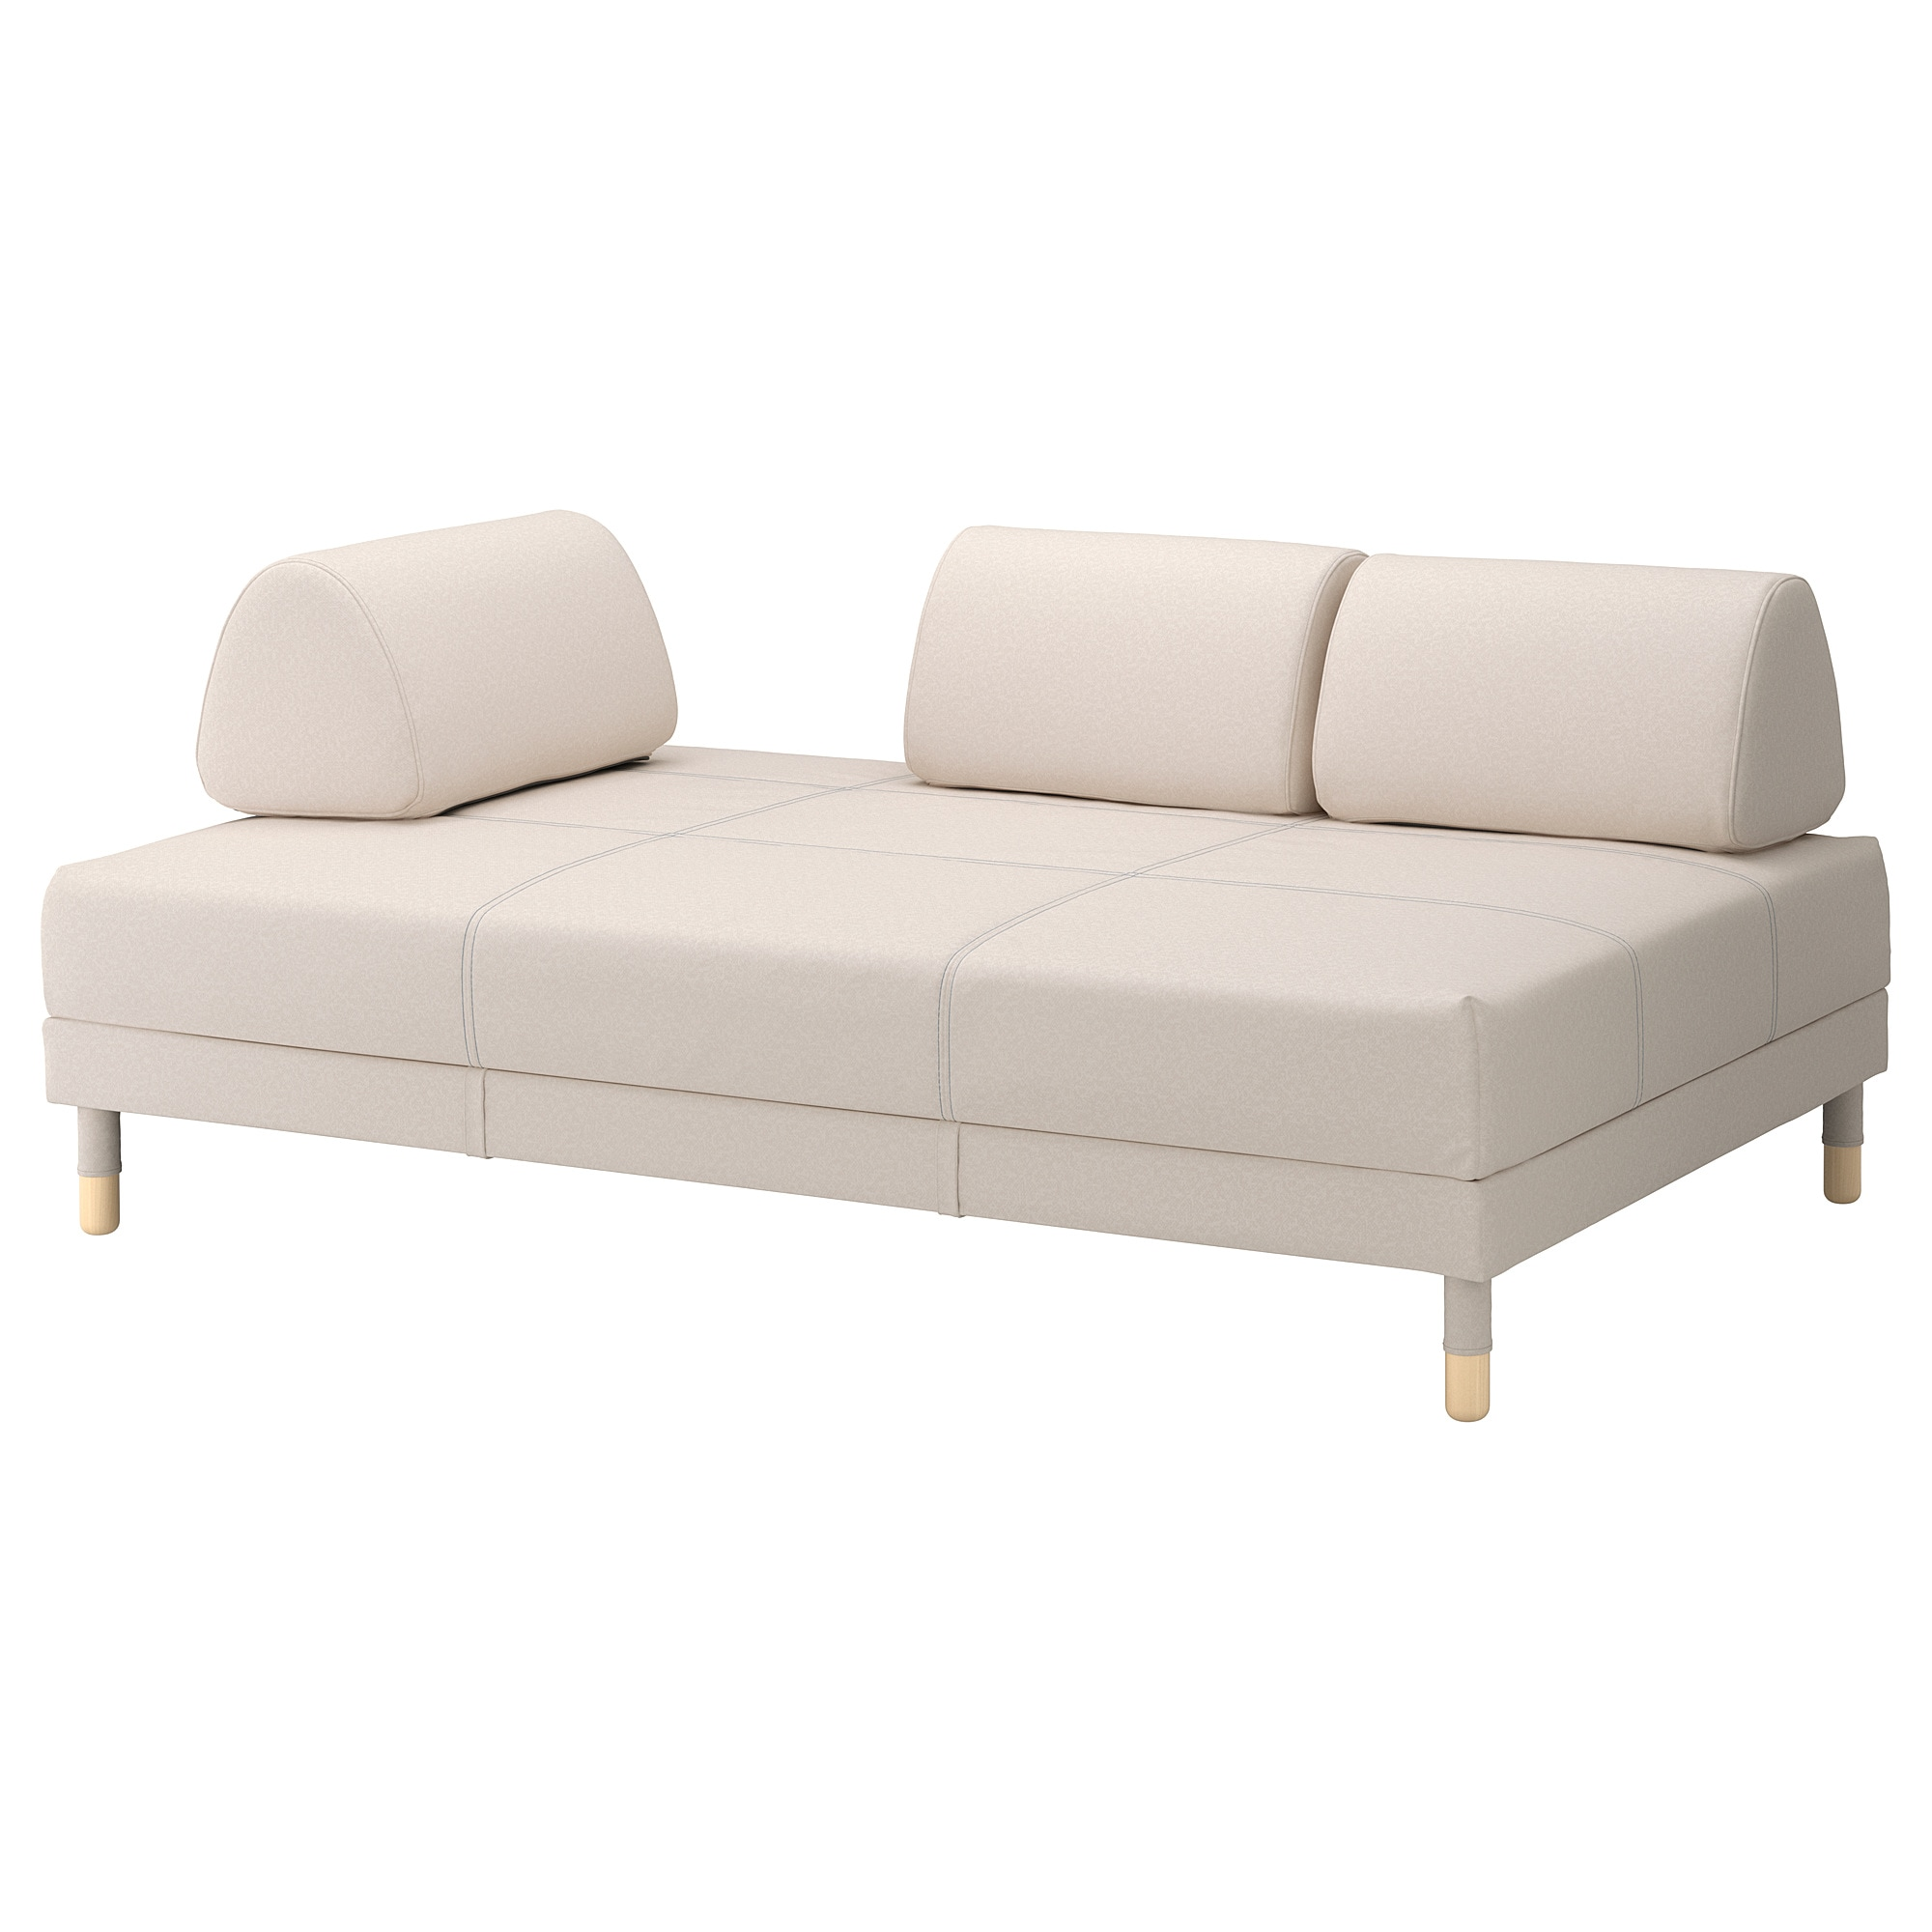 Sofa cama corua excellent lobby with sofa cama corua sof for Chaise longue sofa cama